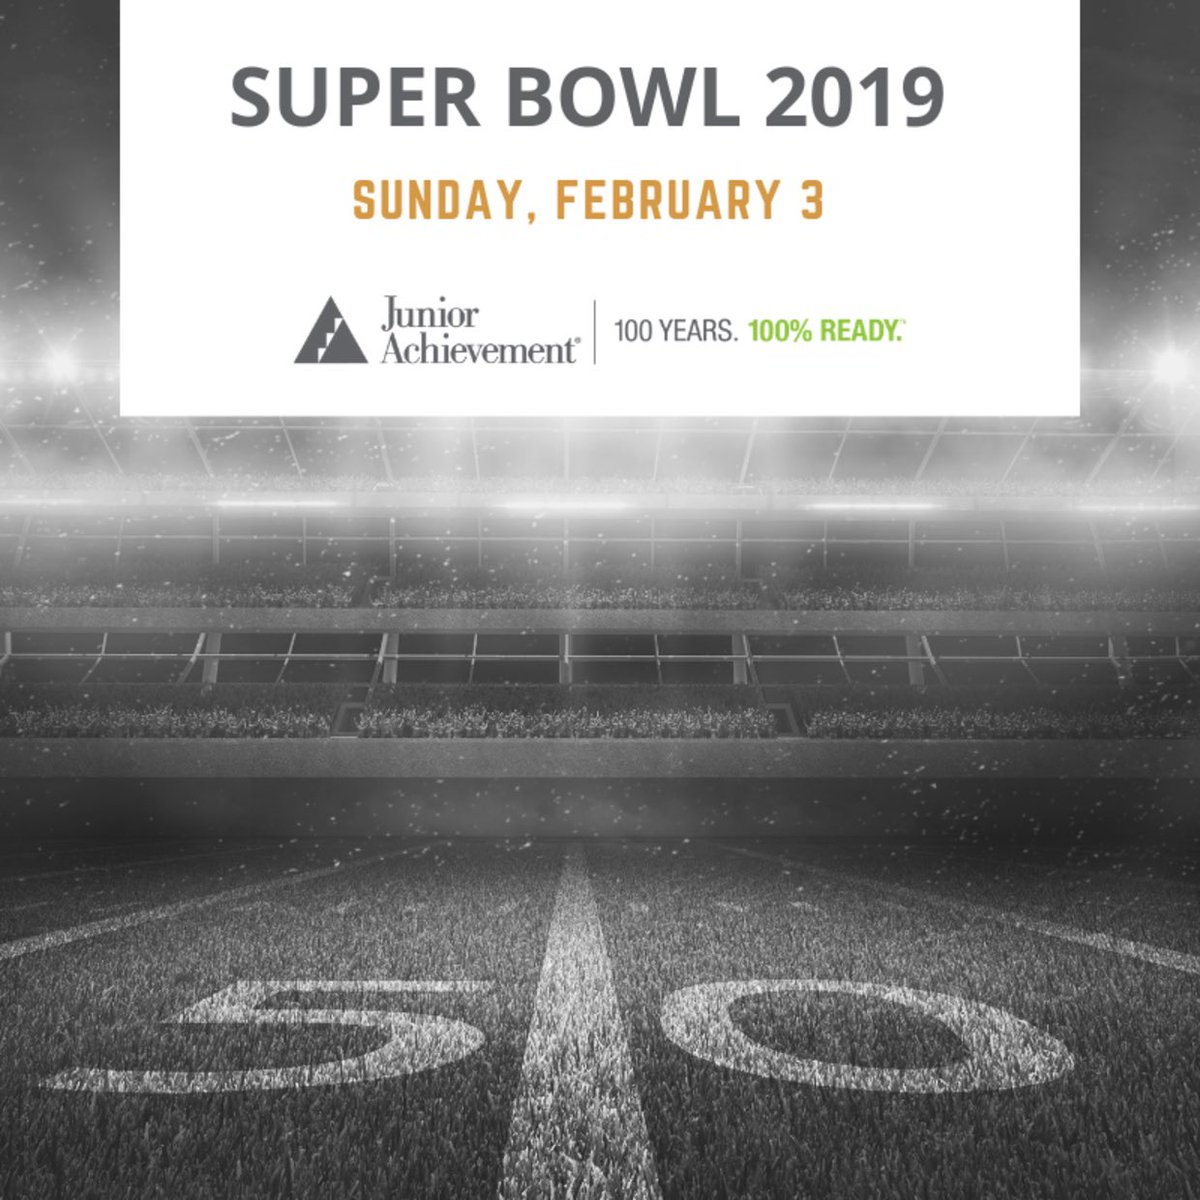 It's #superbowl2019! Who are you cheering for? #champions #SuperBowlSunday